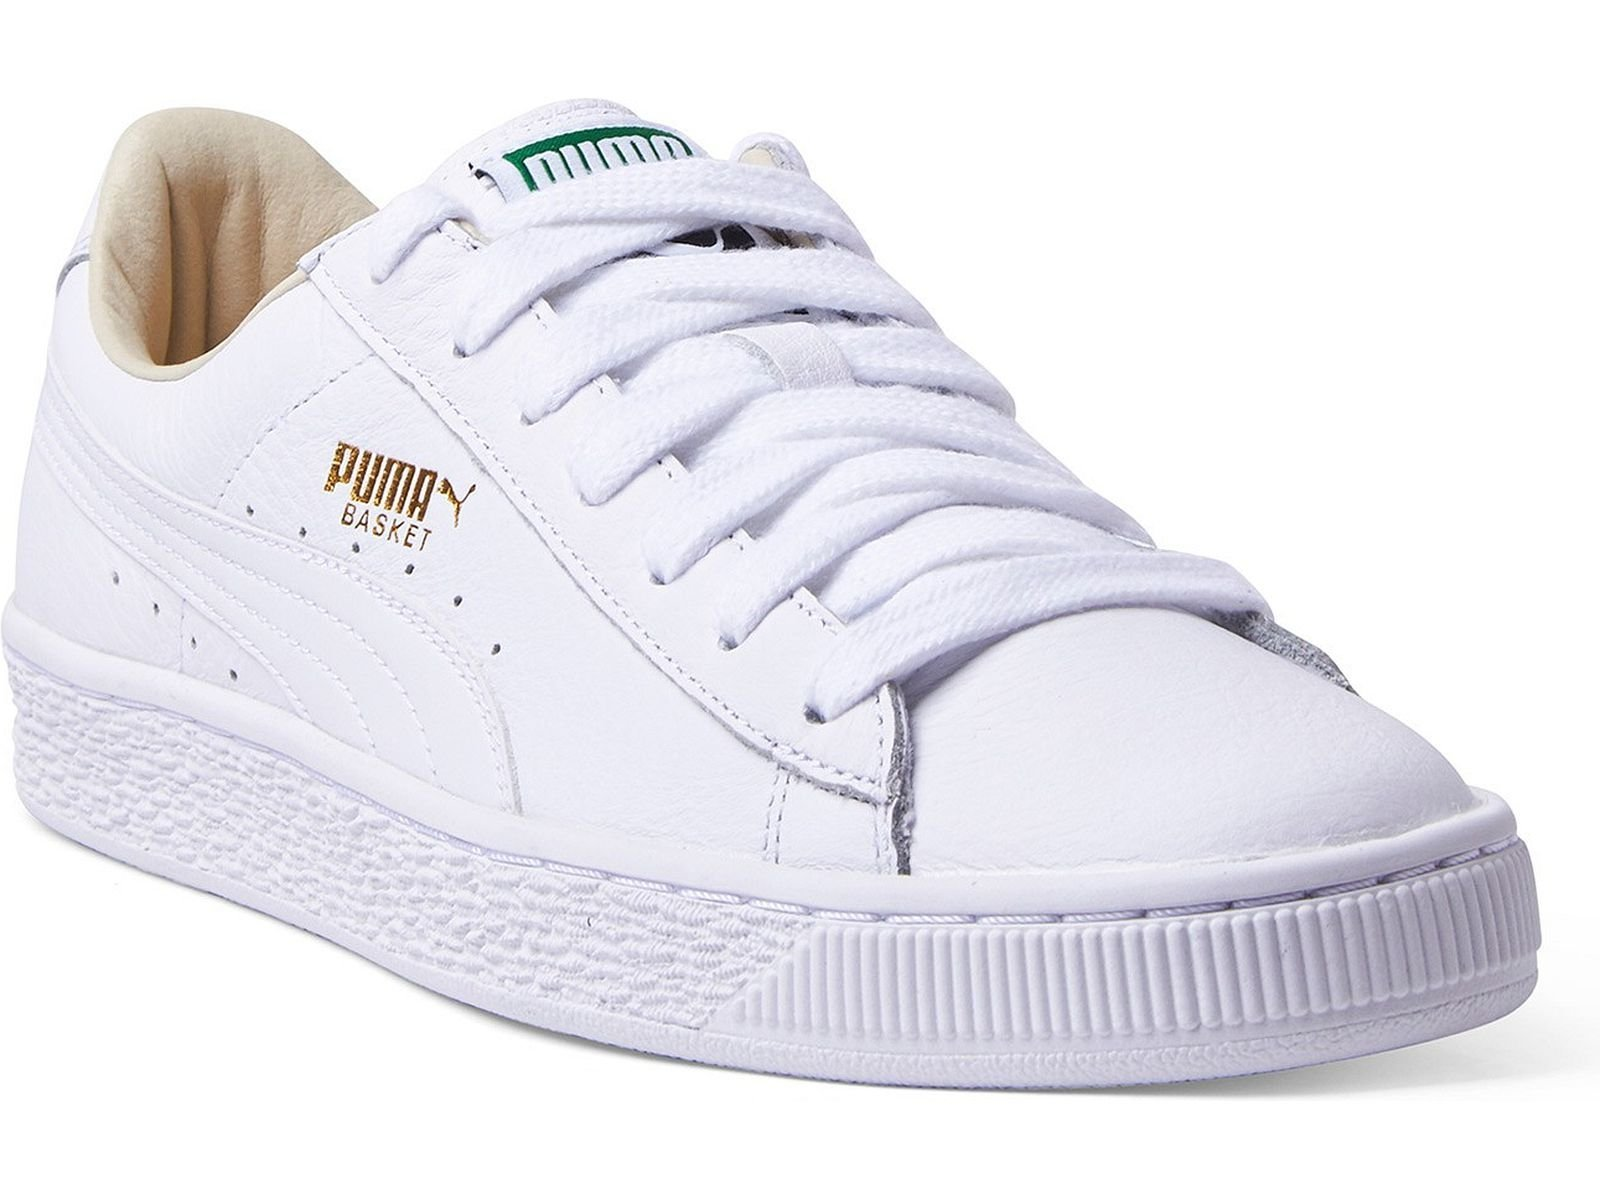 Puma Basket Chaussures Classic LFS Blanc Chaussures Basket 354367 17 ab7d37